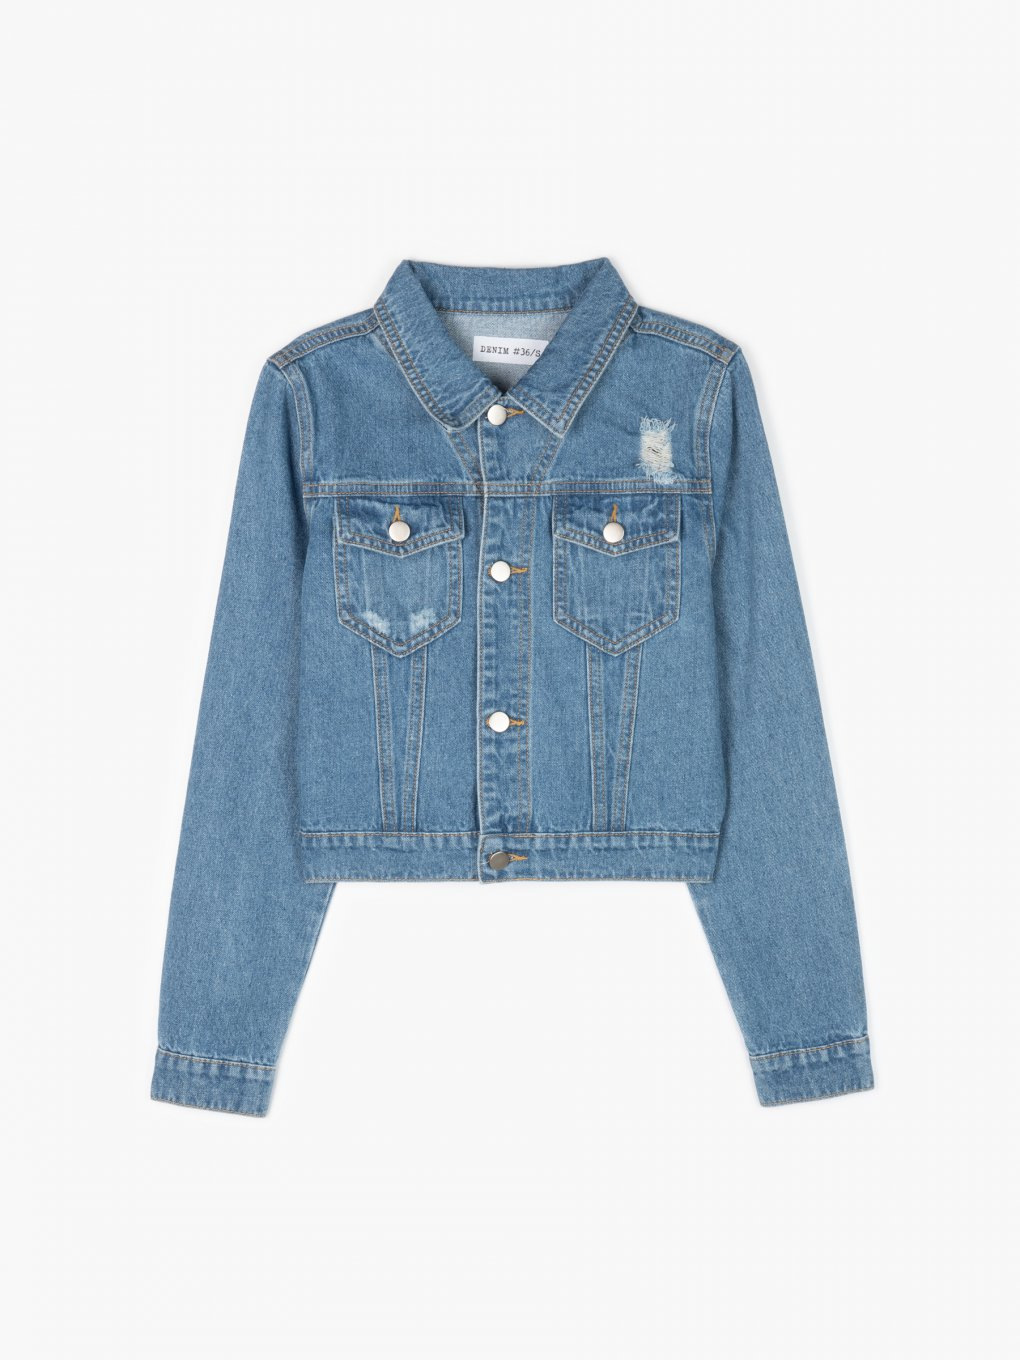 Denim jacket with tassels